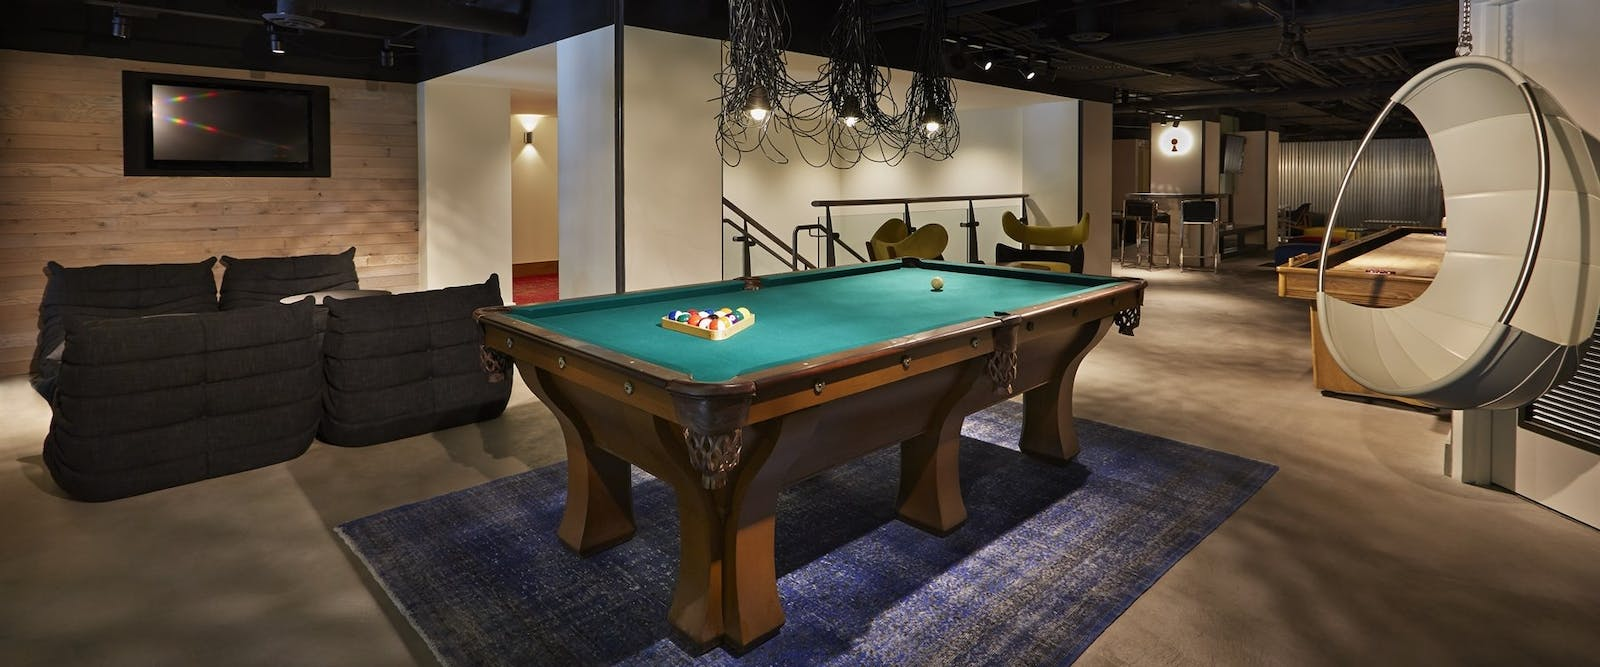 Games Room at Hotel Zetta, San Francisco, California